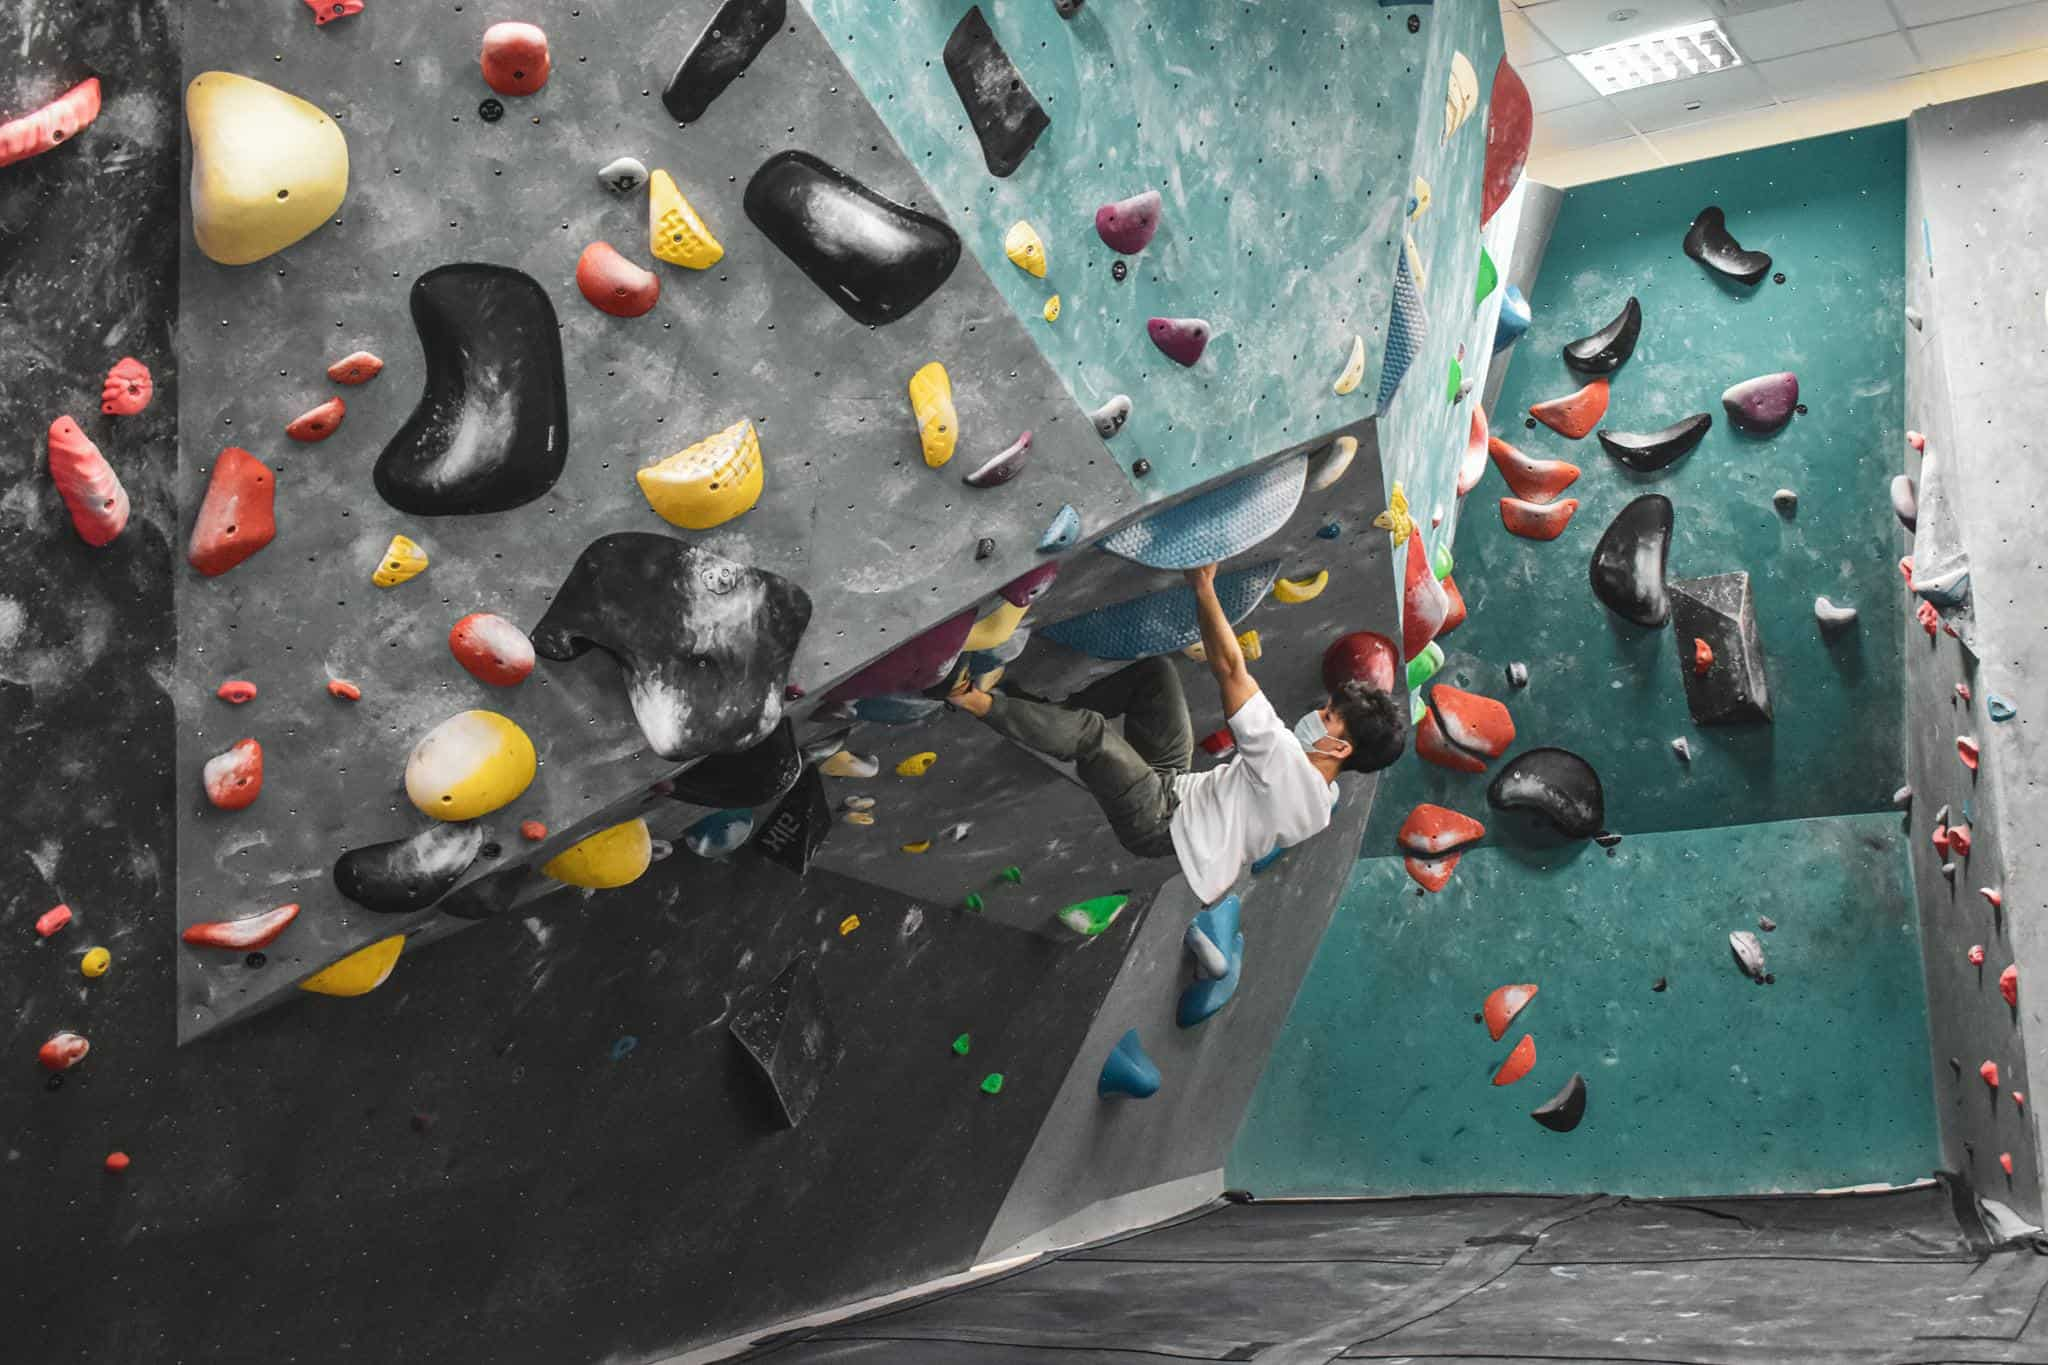 Boulder World is the Largest Indoor Bouldering Gym in Singapore, Is bouldering safer than rock climbing?, Is bouldering safer than rock climbing?, Is rock climbing expensive?, How do I start rock climbing in Singapore?, Can you get ripped by rock climbing?, Is rock climbing hard for beginners?, Is 50 too old to start rock climbing?